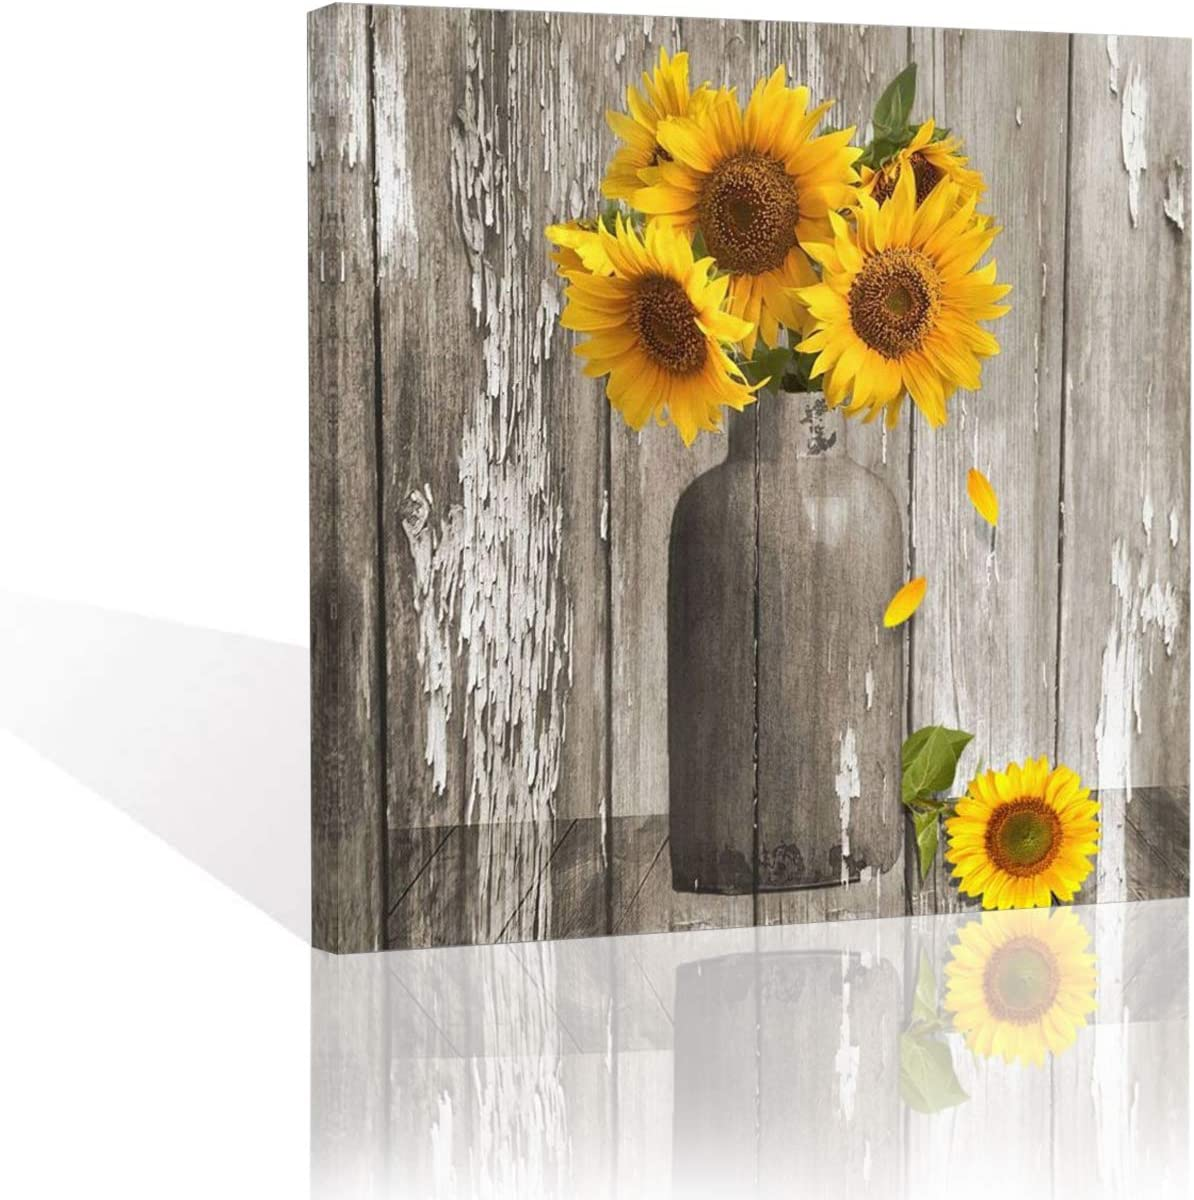 CARRYFUTURE Rustic Floral Country Farmhouse Yellow Sunflower in Vase Contemporary Canvas Artwork Prints Wall Art Decor For Home Living Room Bedroom Office Decoration Framed Ready To Hang 20x20 inch